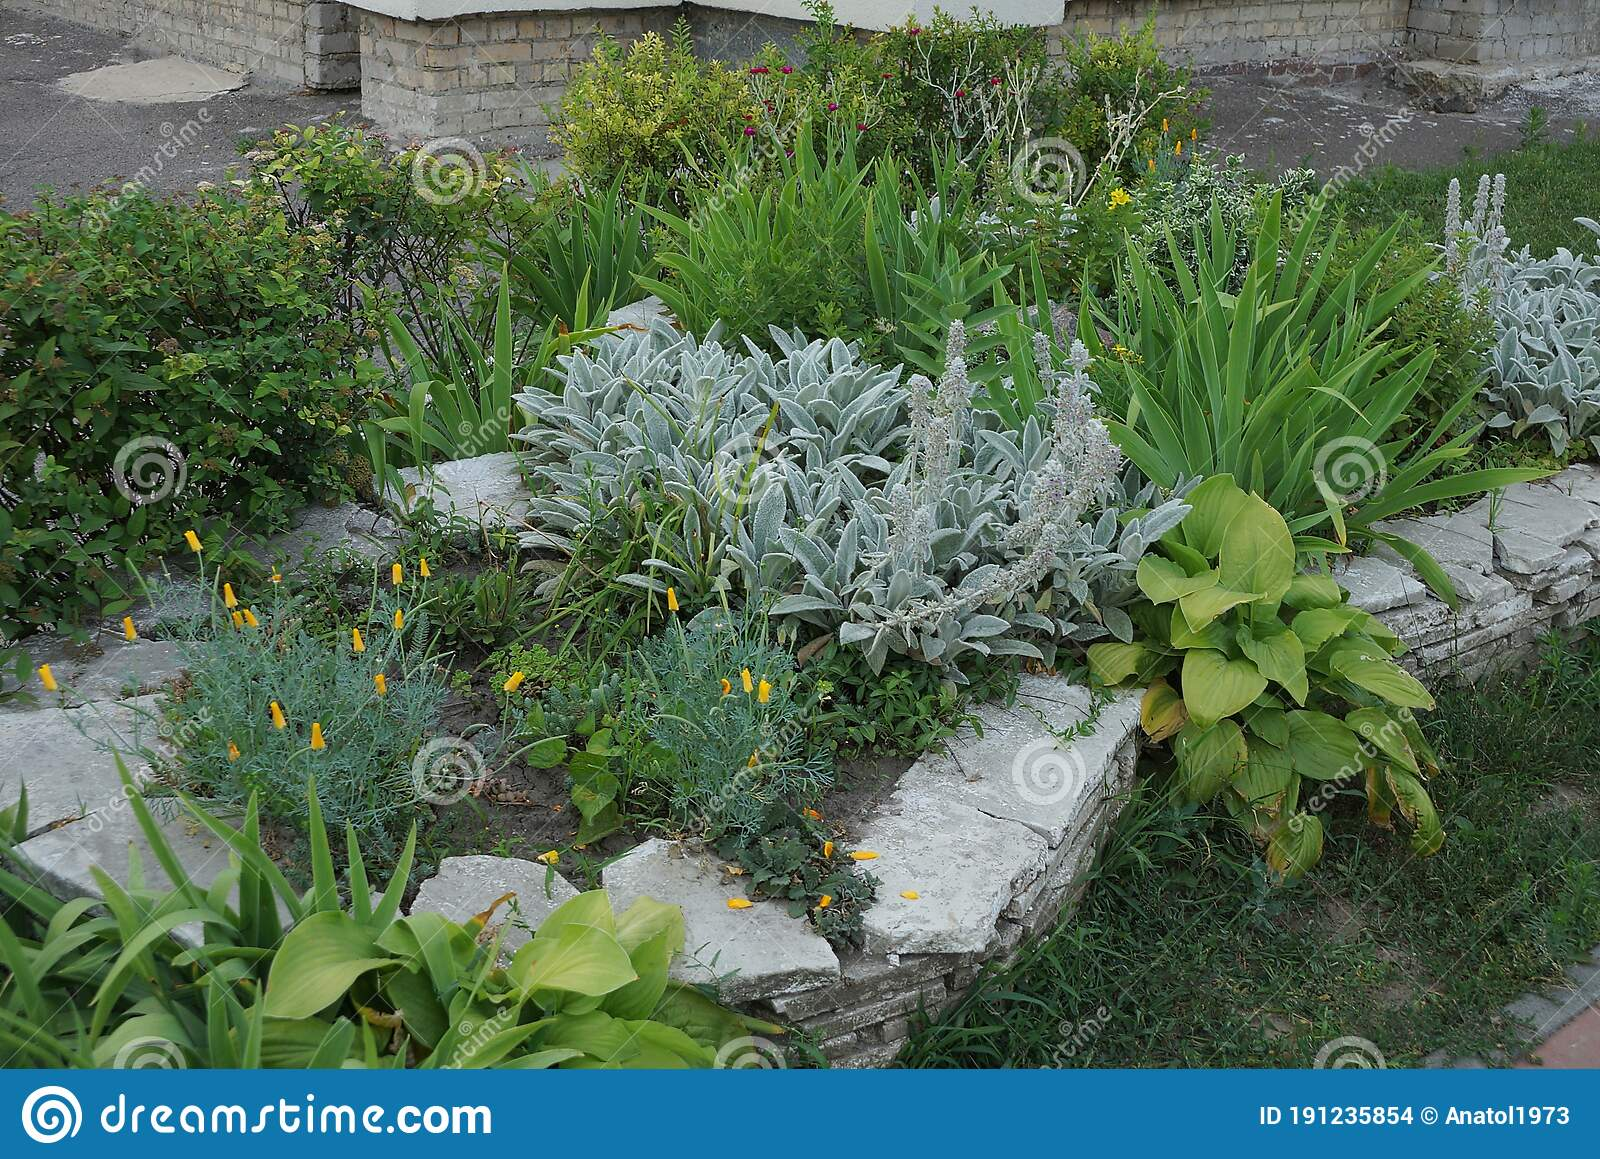 Image of: Ornamental Plants Grass And Flowers On A Flower Bed Stock Photo Image Of Land Garden 191235854